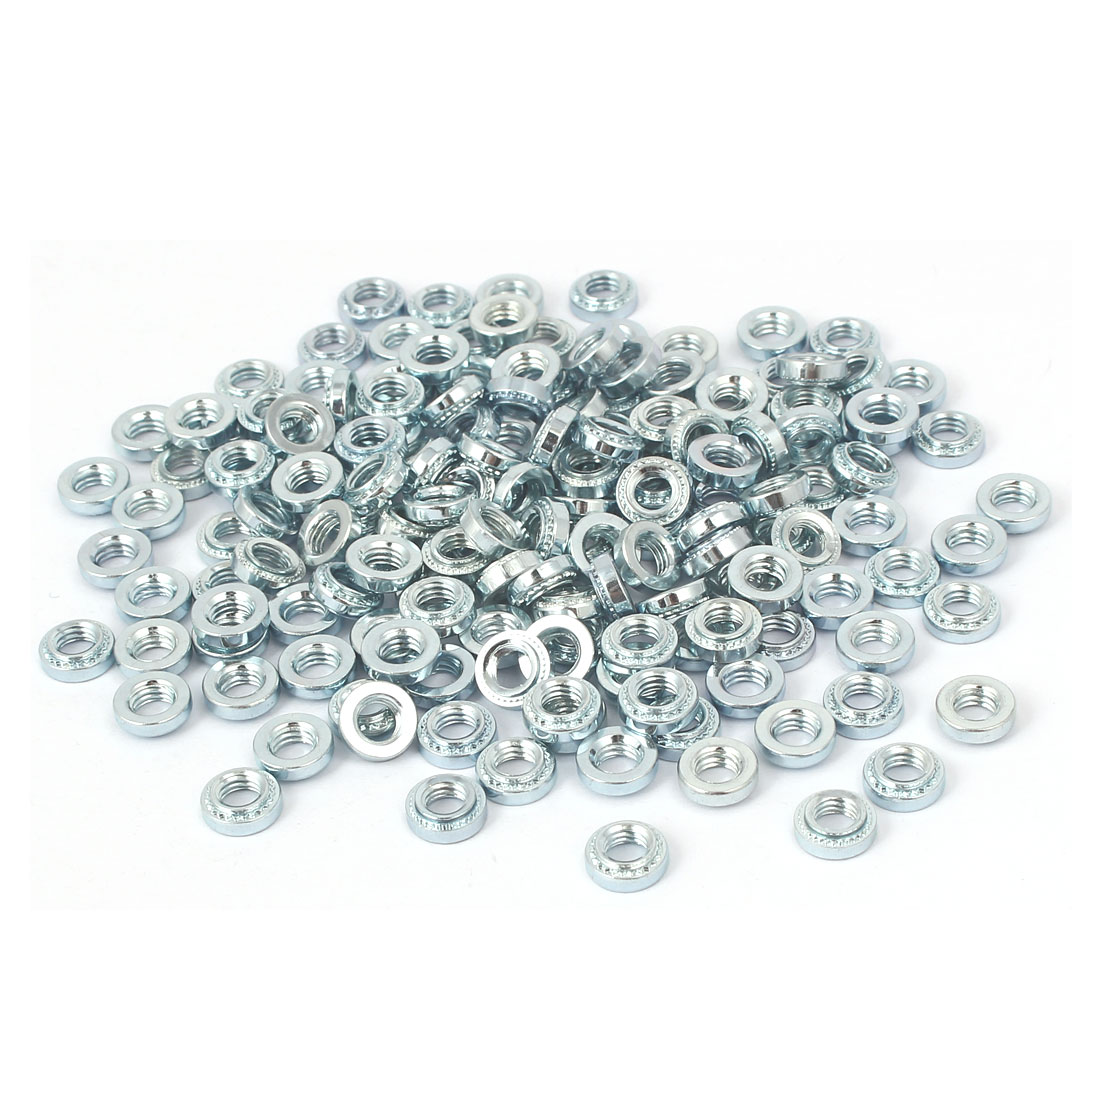 S-M5-1 Carbon Steel Self Clinching Rivet Nut Fastener 200pcs for 1.0mm Thin Plates